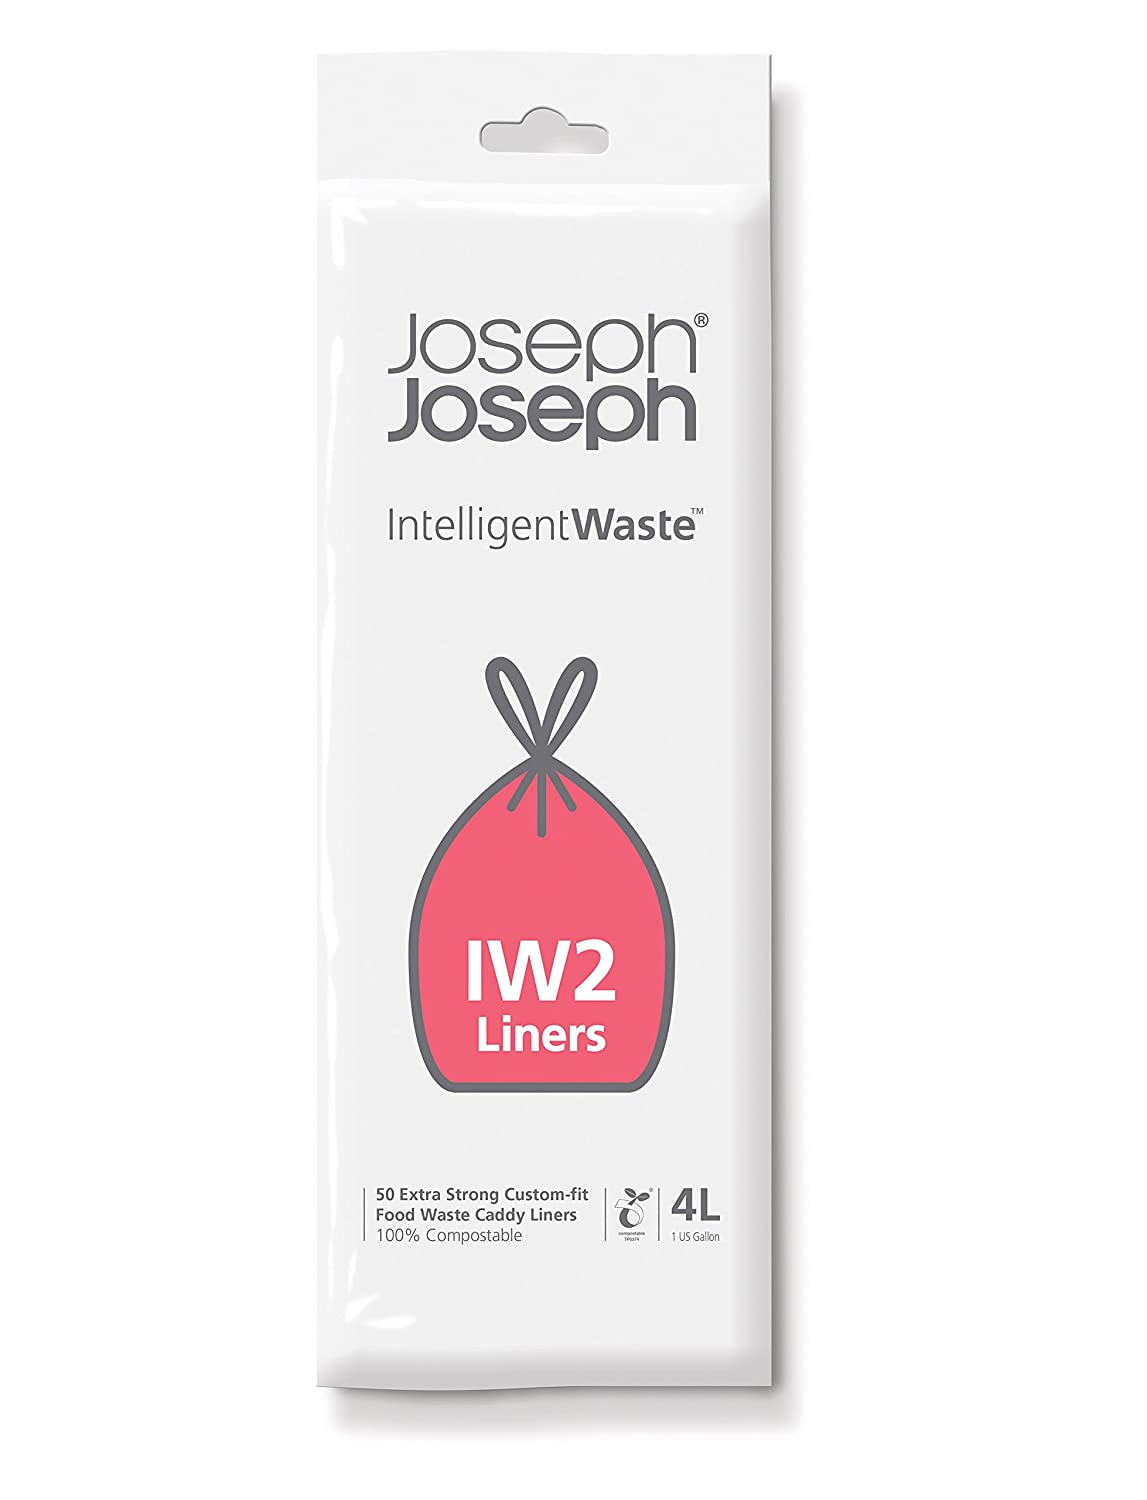 Joseph Joseph Intelligent Waste Compostable Bags - White, Pack of 50 30007